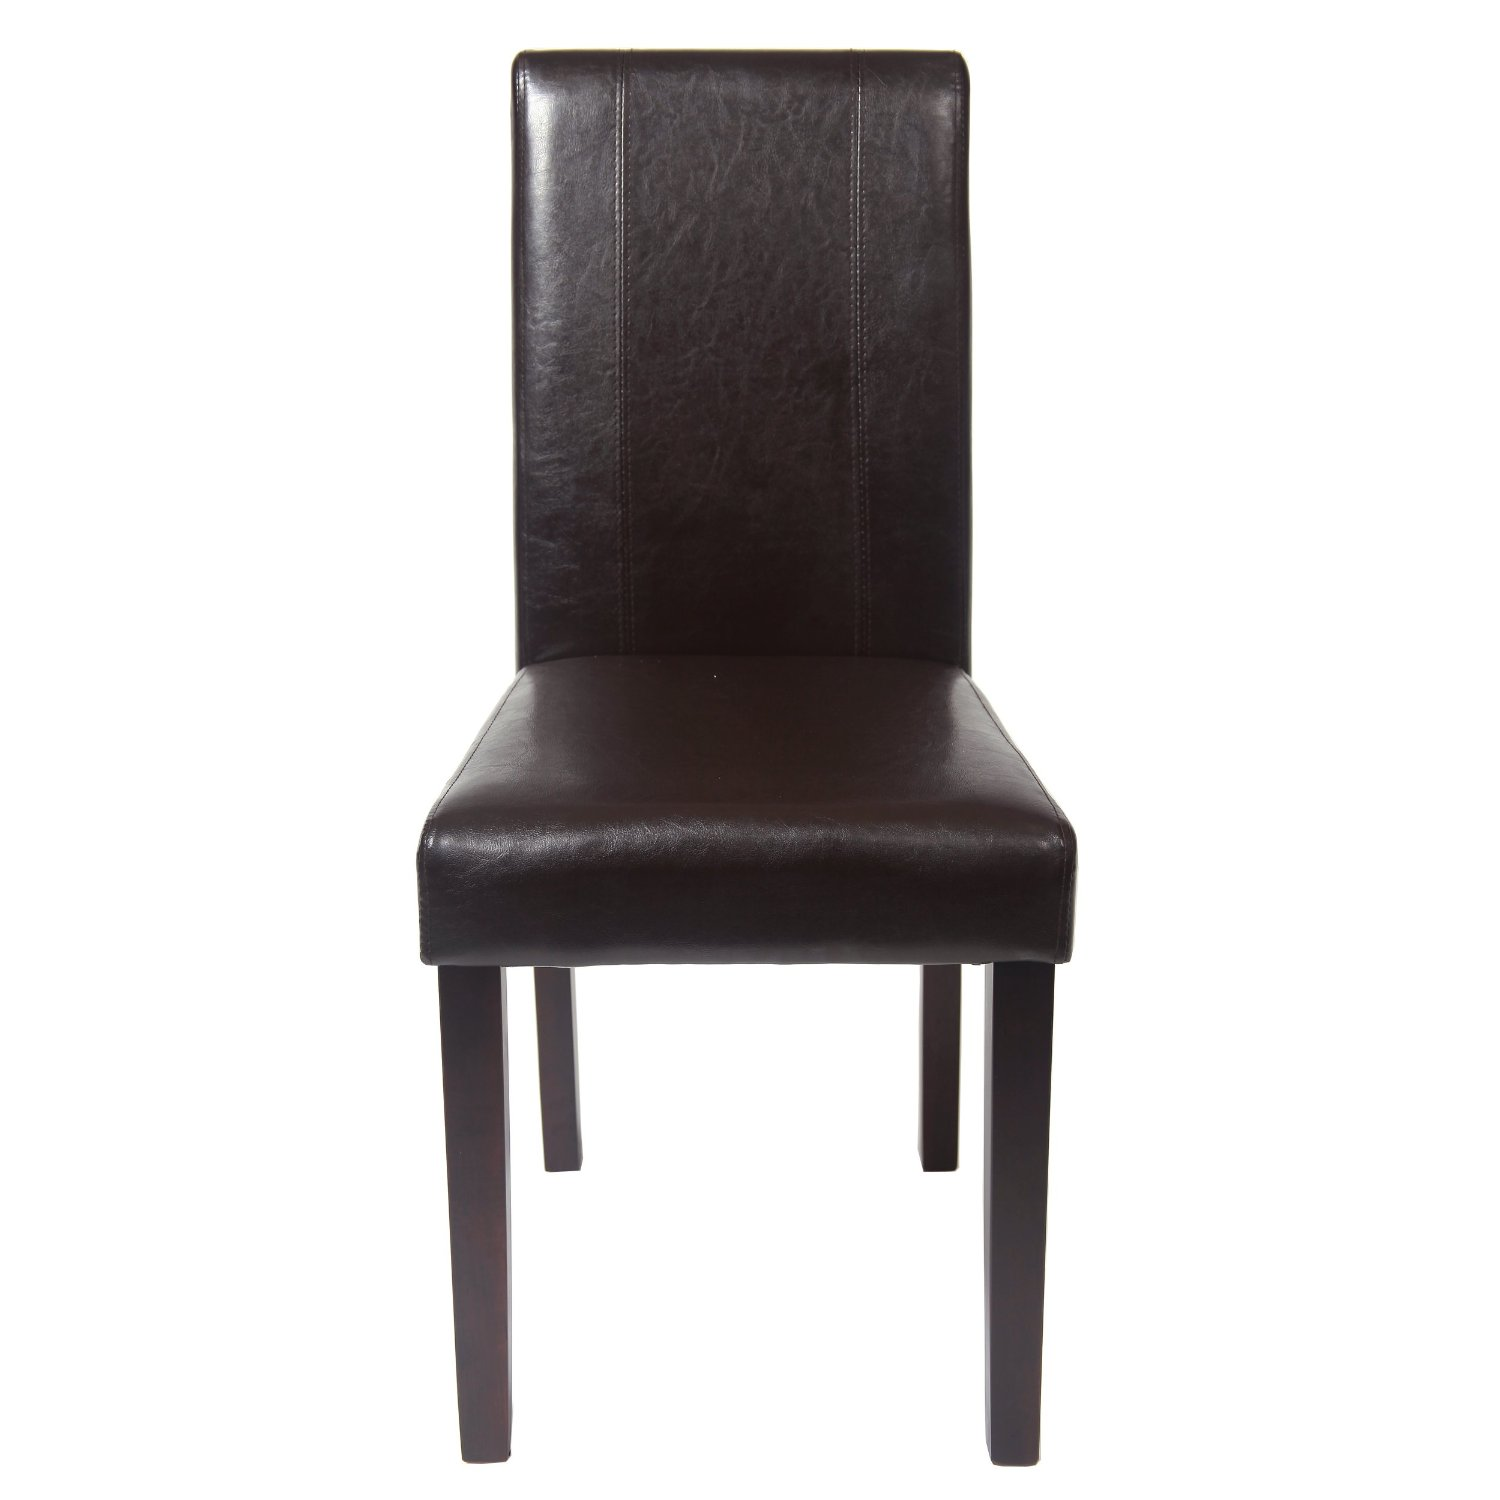 Top 10 Best Chairs for Bedrooms Reviews - [2020 Guide]